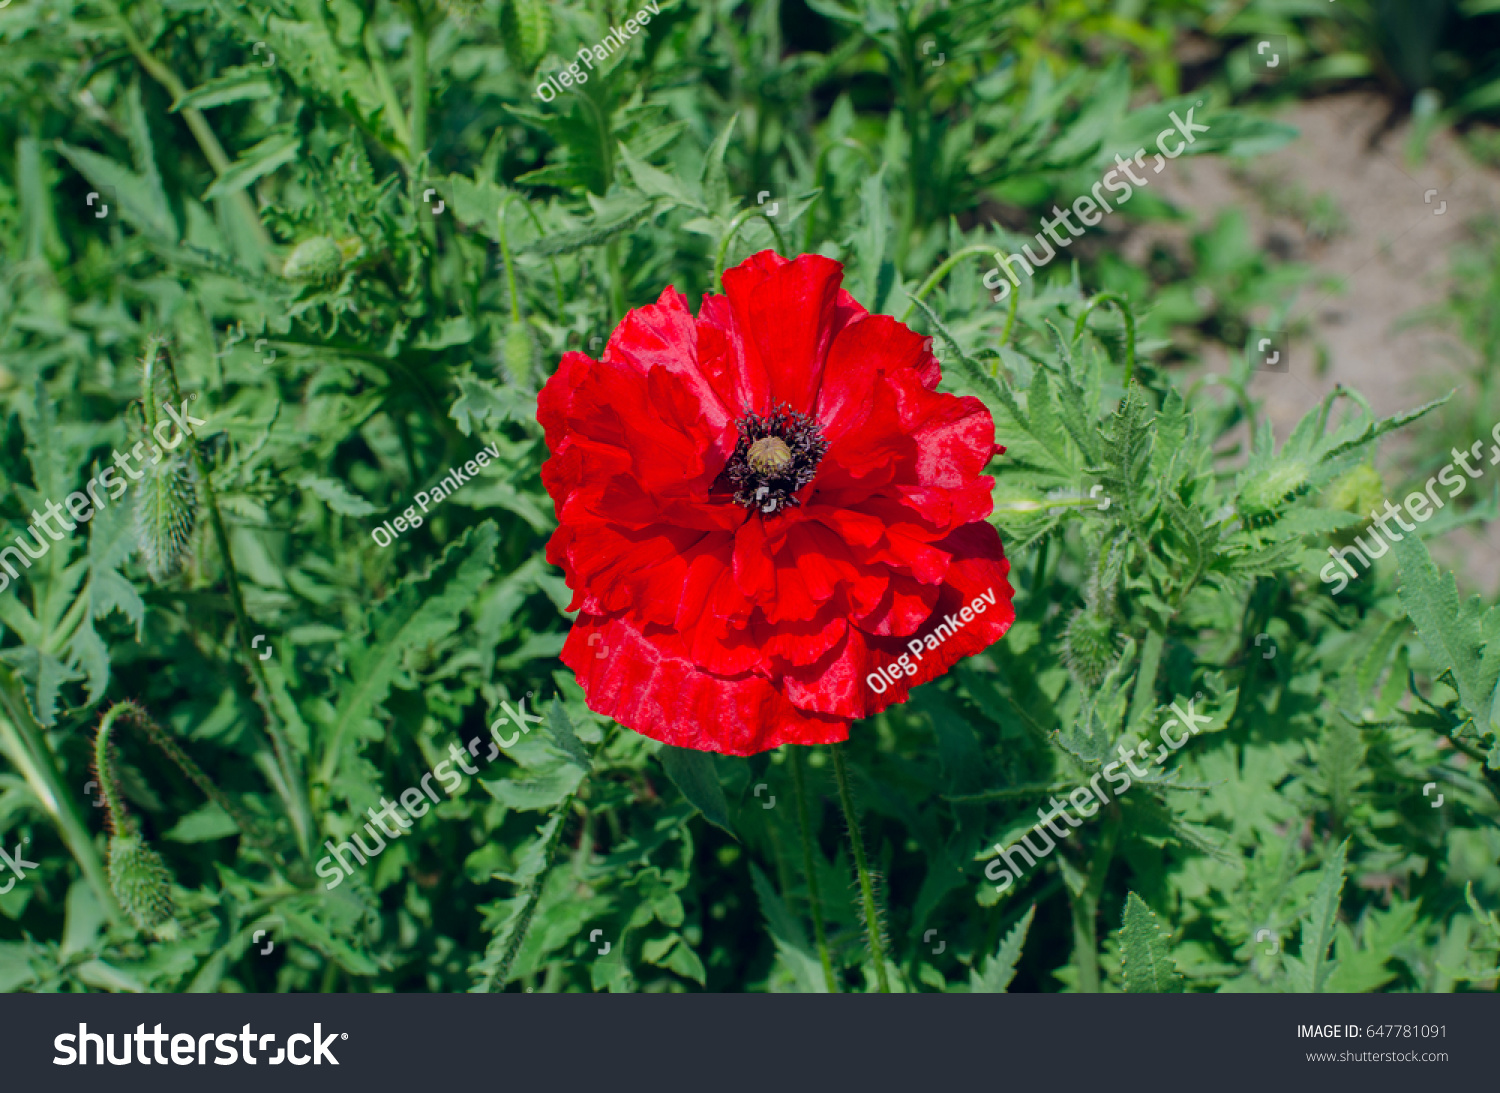 Flower Red Like Blood Maca Stock Photo Edit Now 647781091